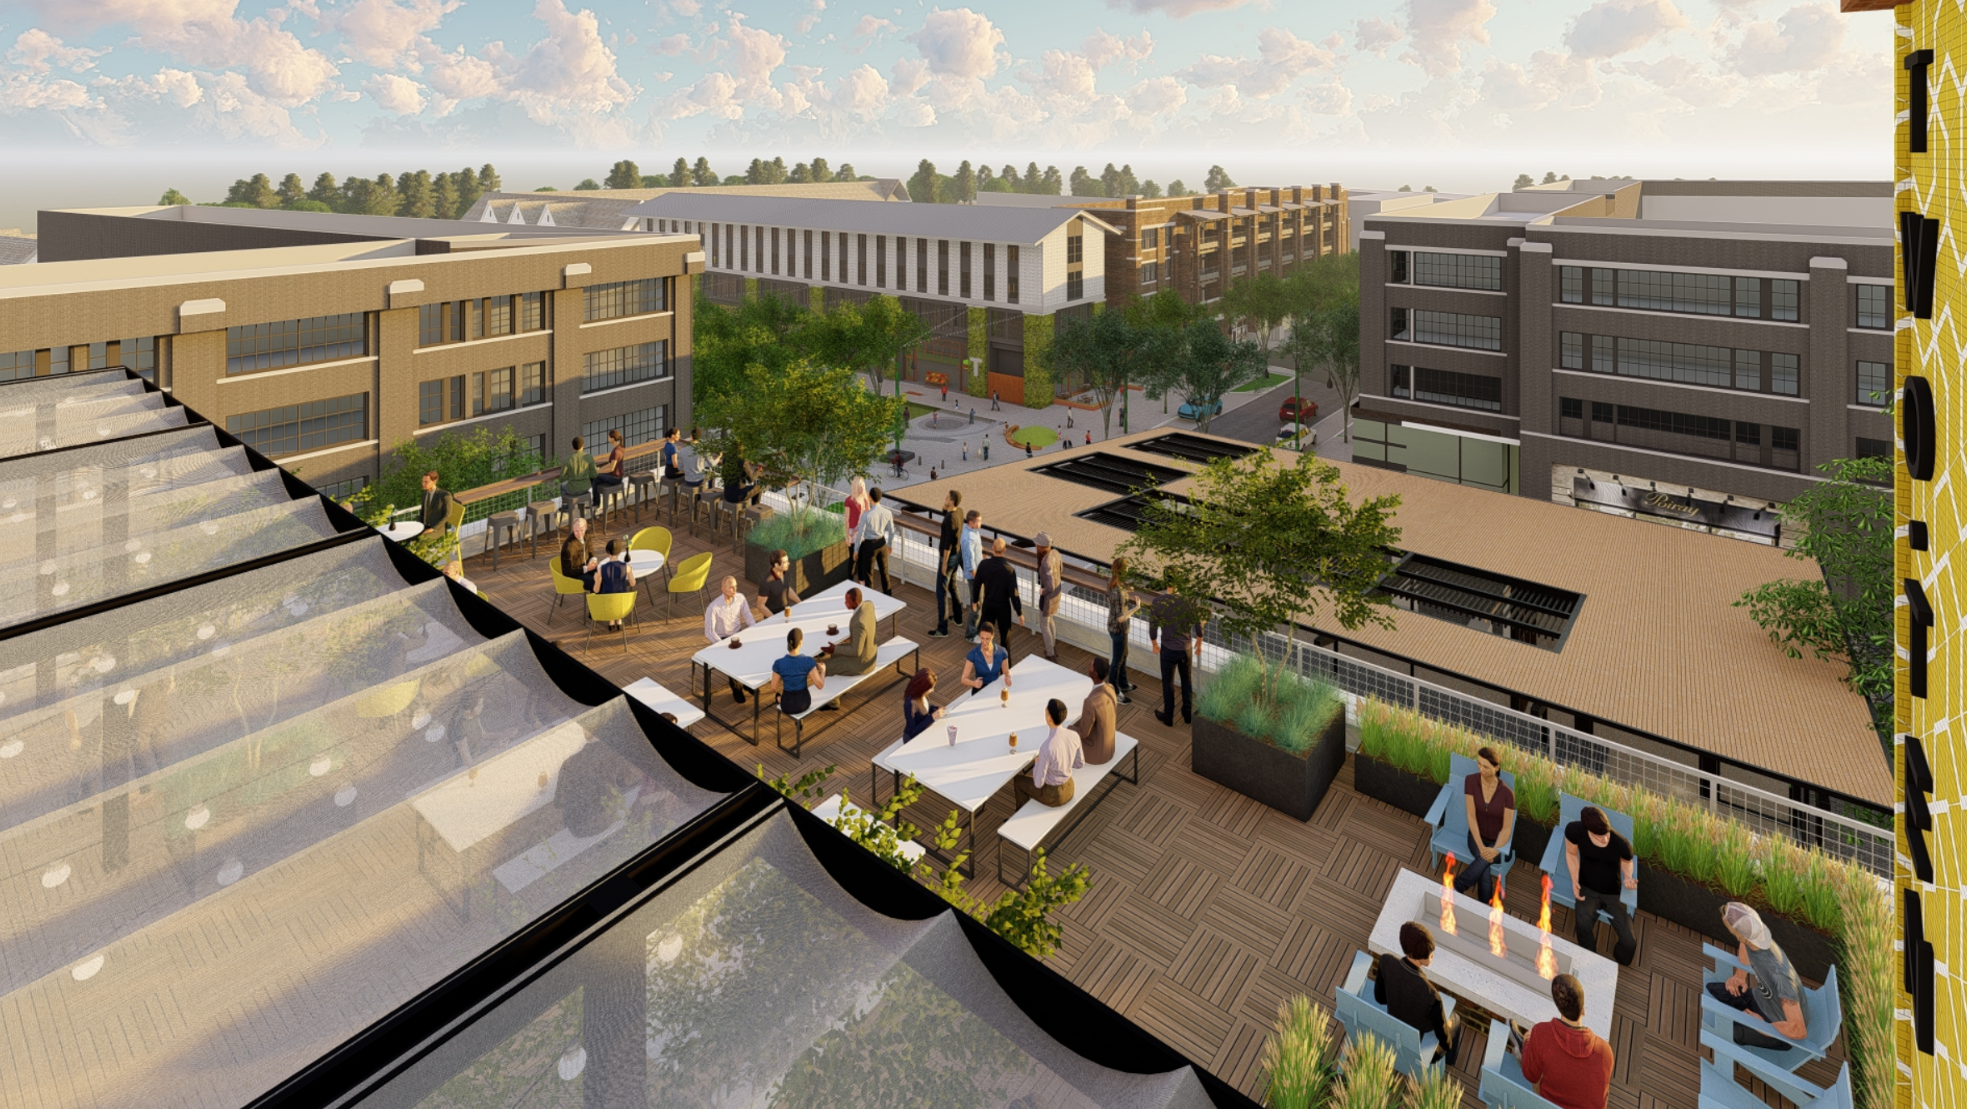 A rendering shows the vantage point of the under-construction retail and office building.